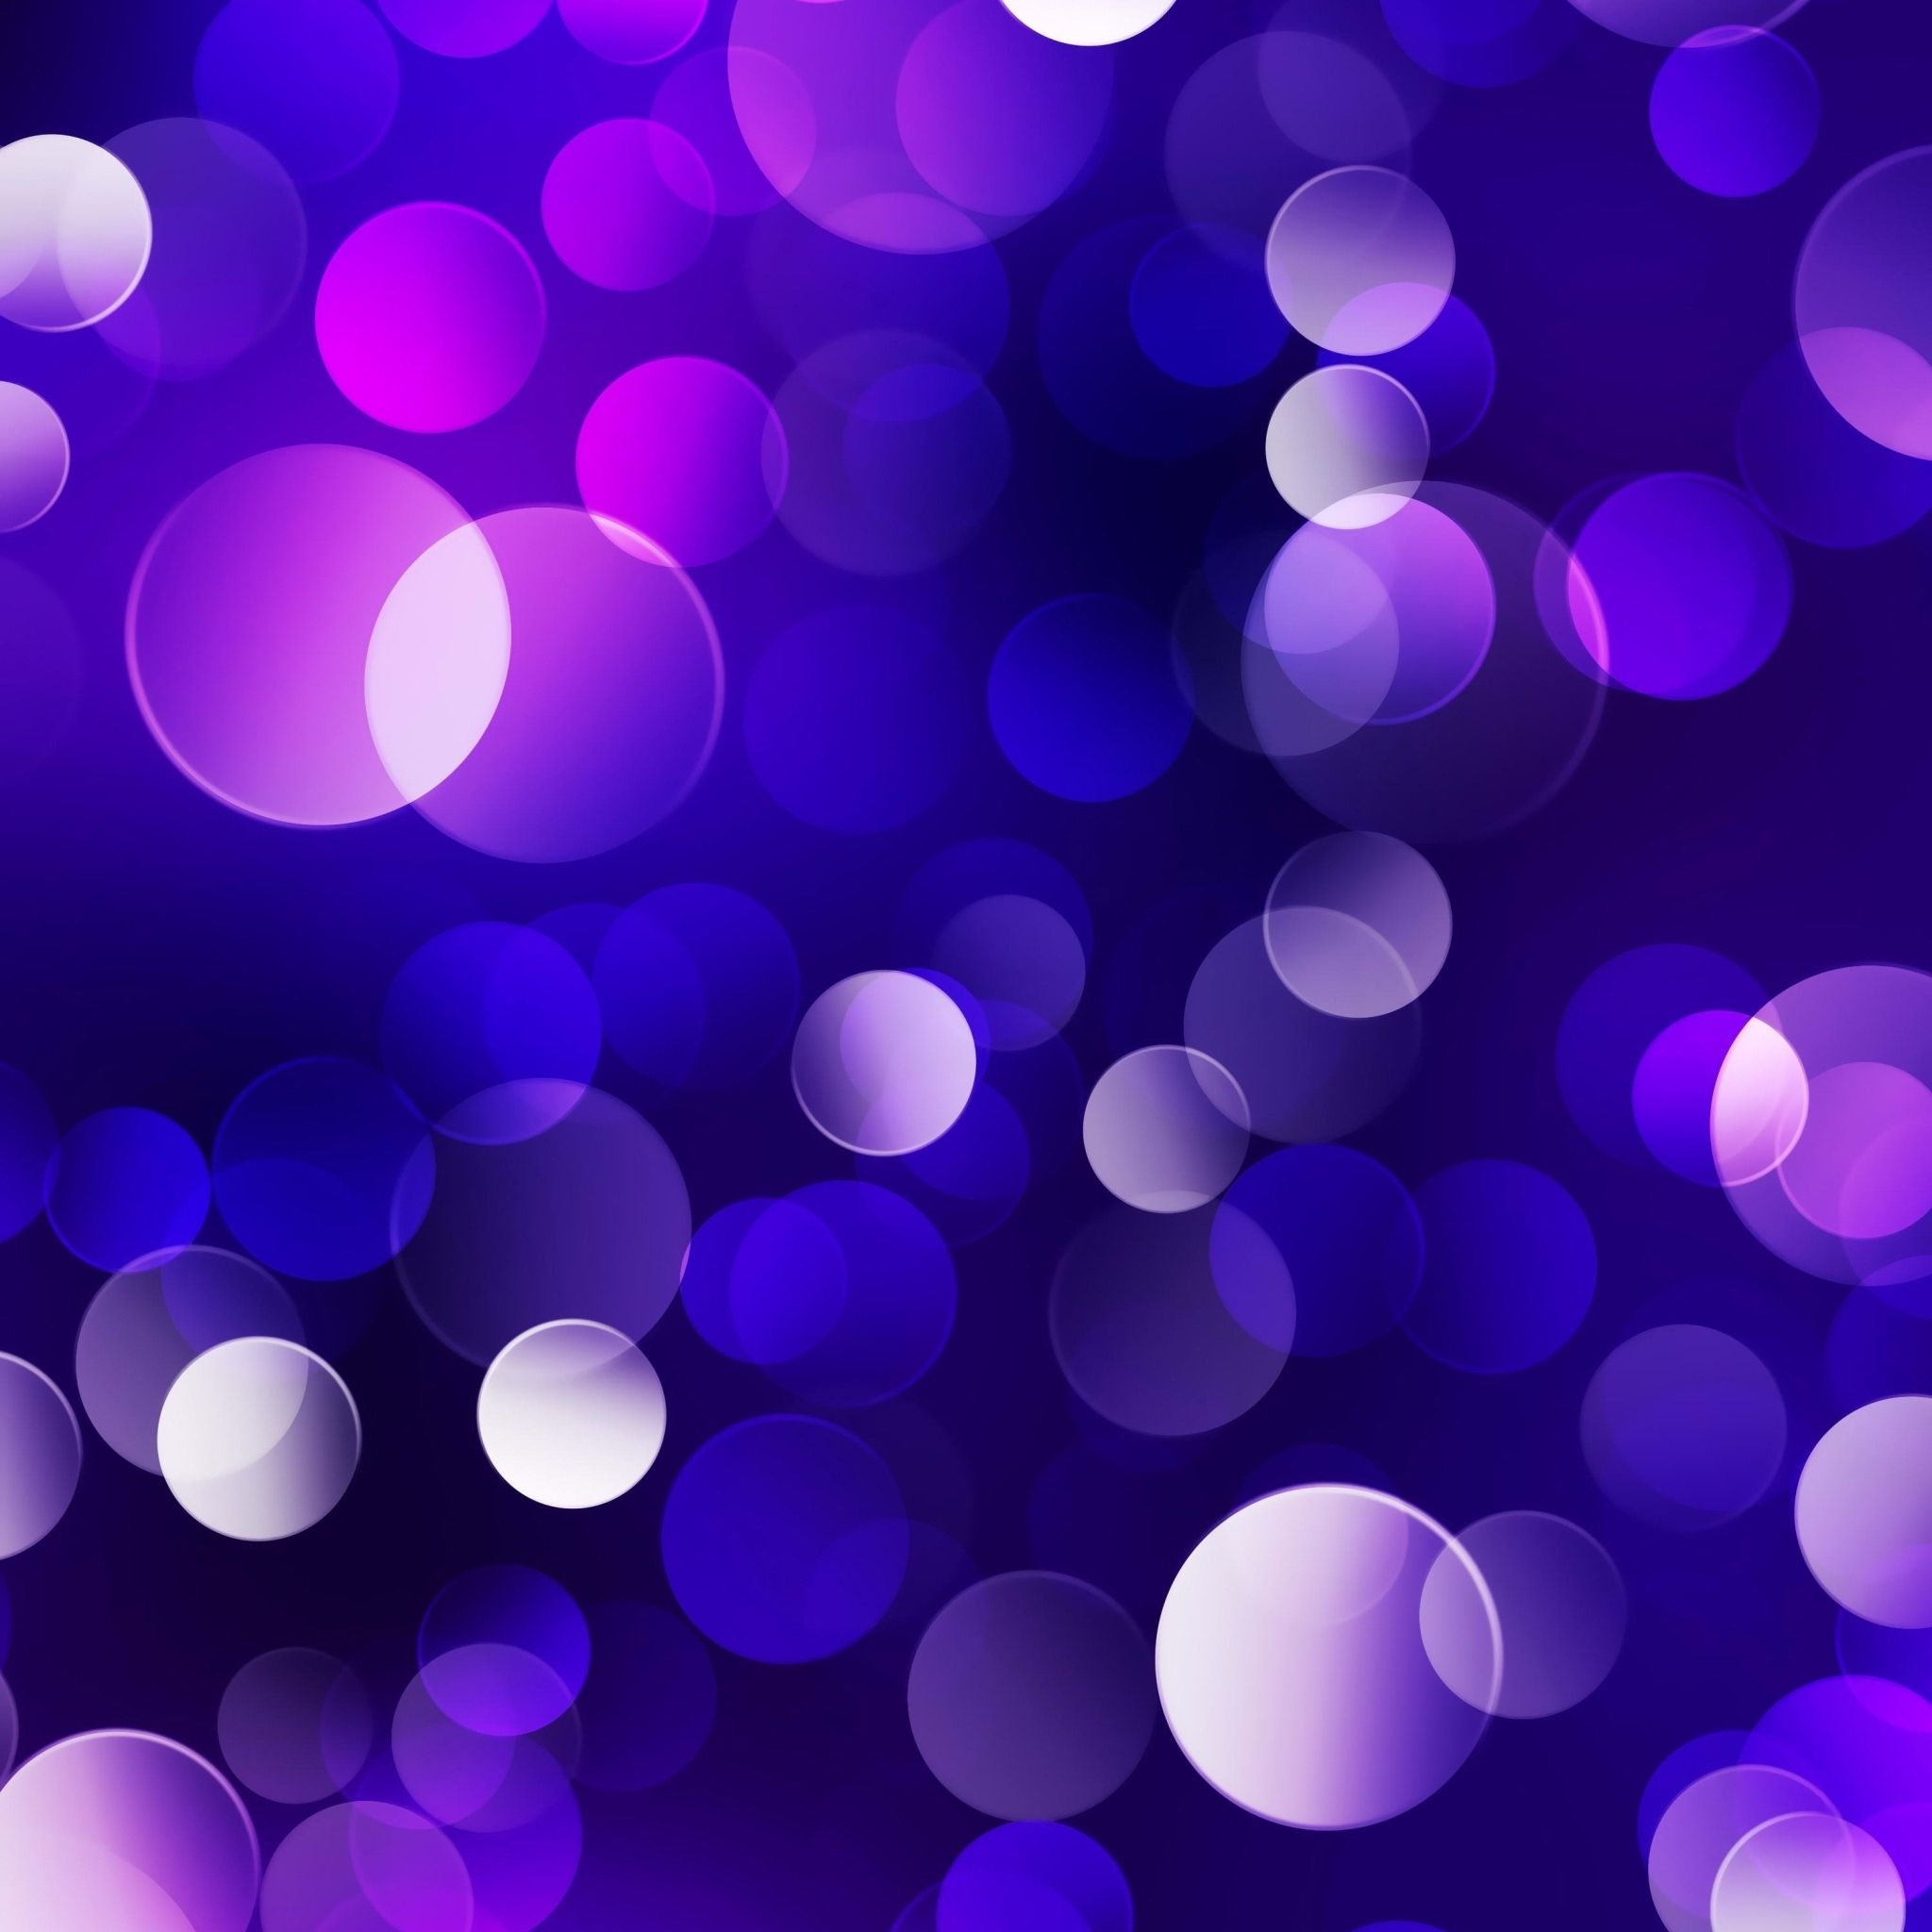 Purple Abstract Background HD Wallpaper Download In 2048x2048 1024x1024 Resolutions Find Similar And Same Color Wallpapers